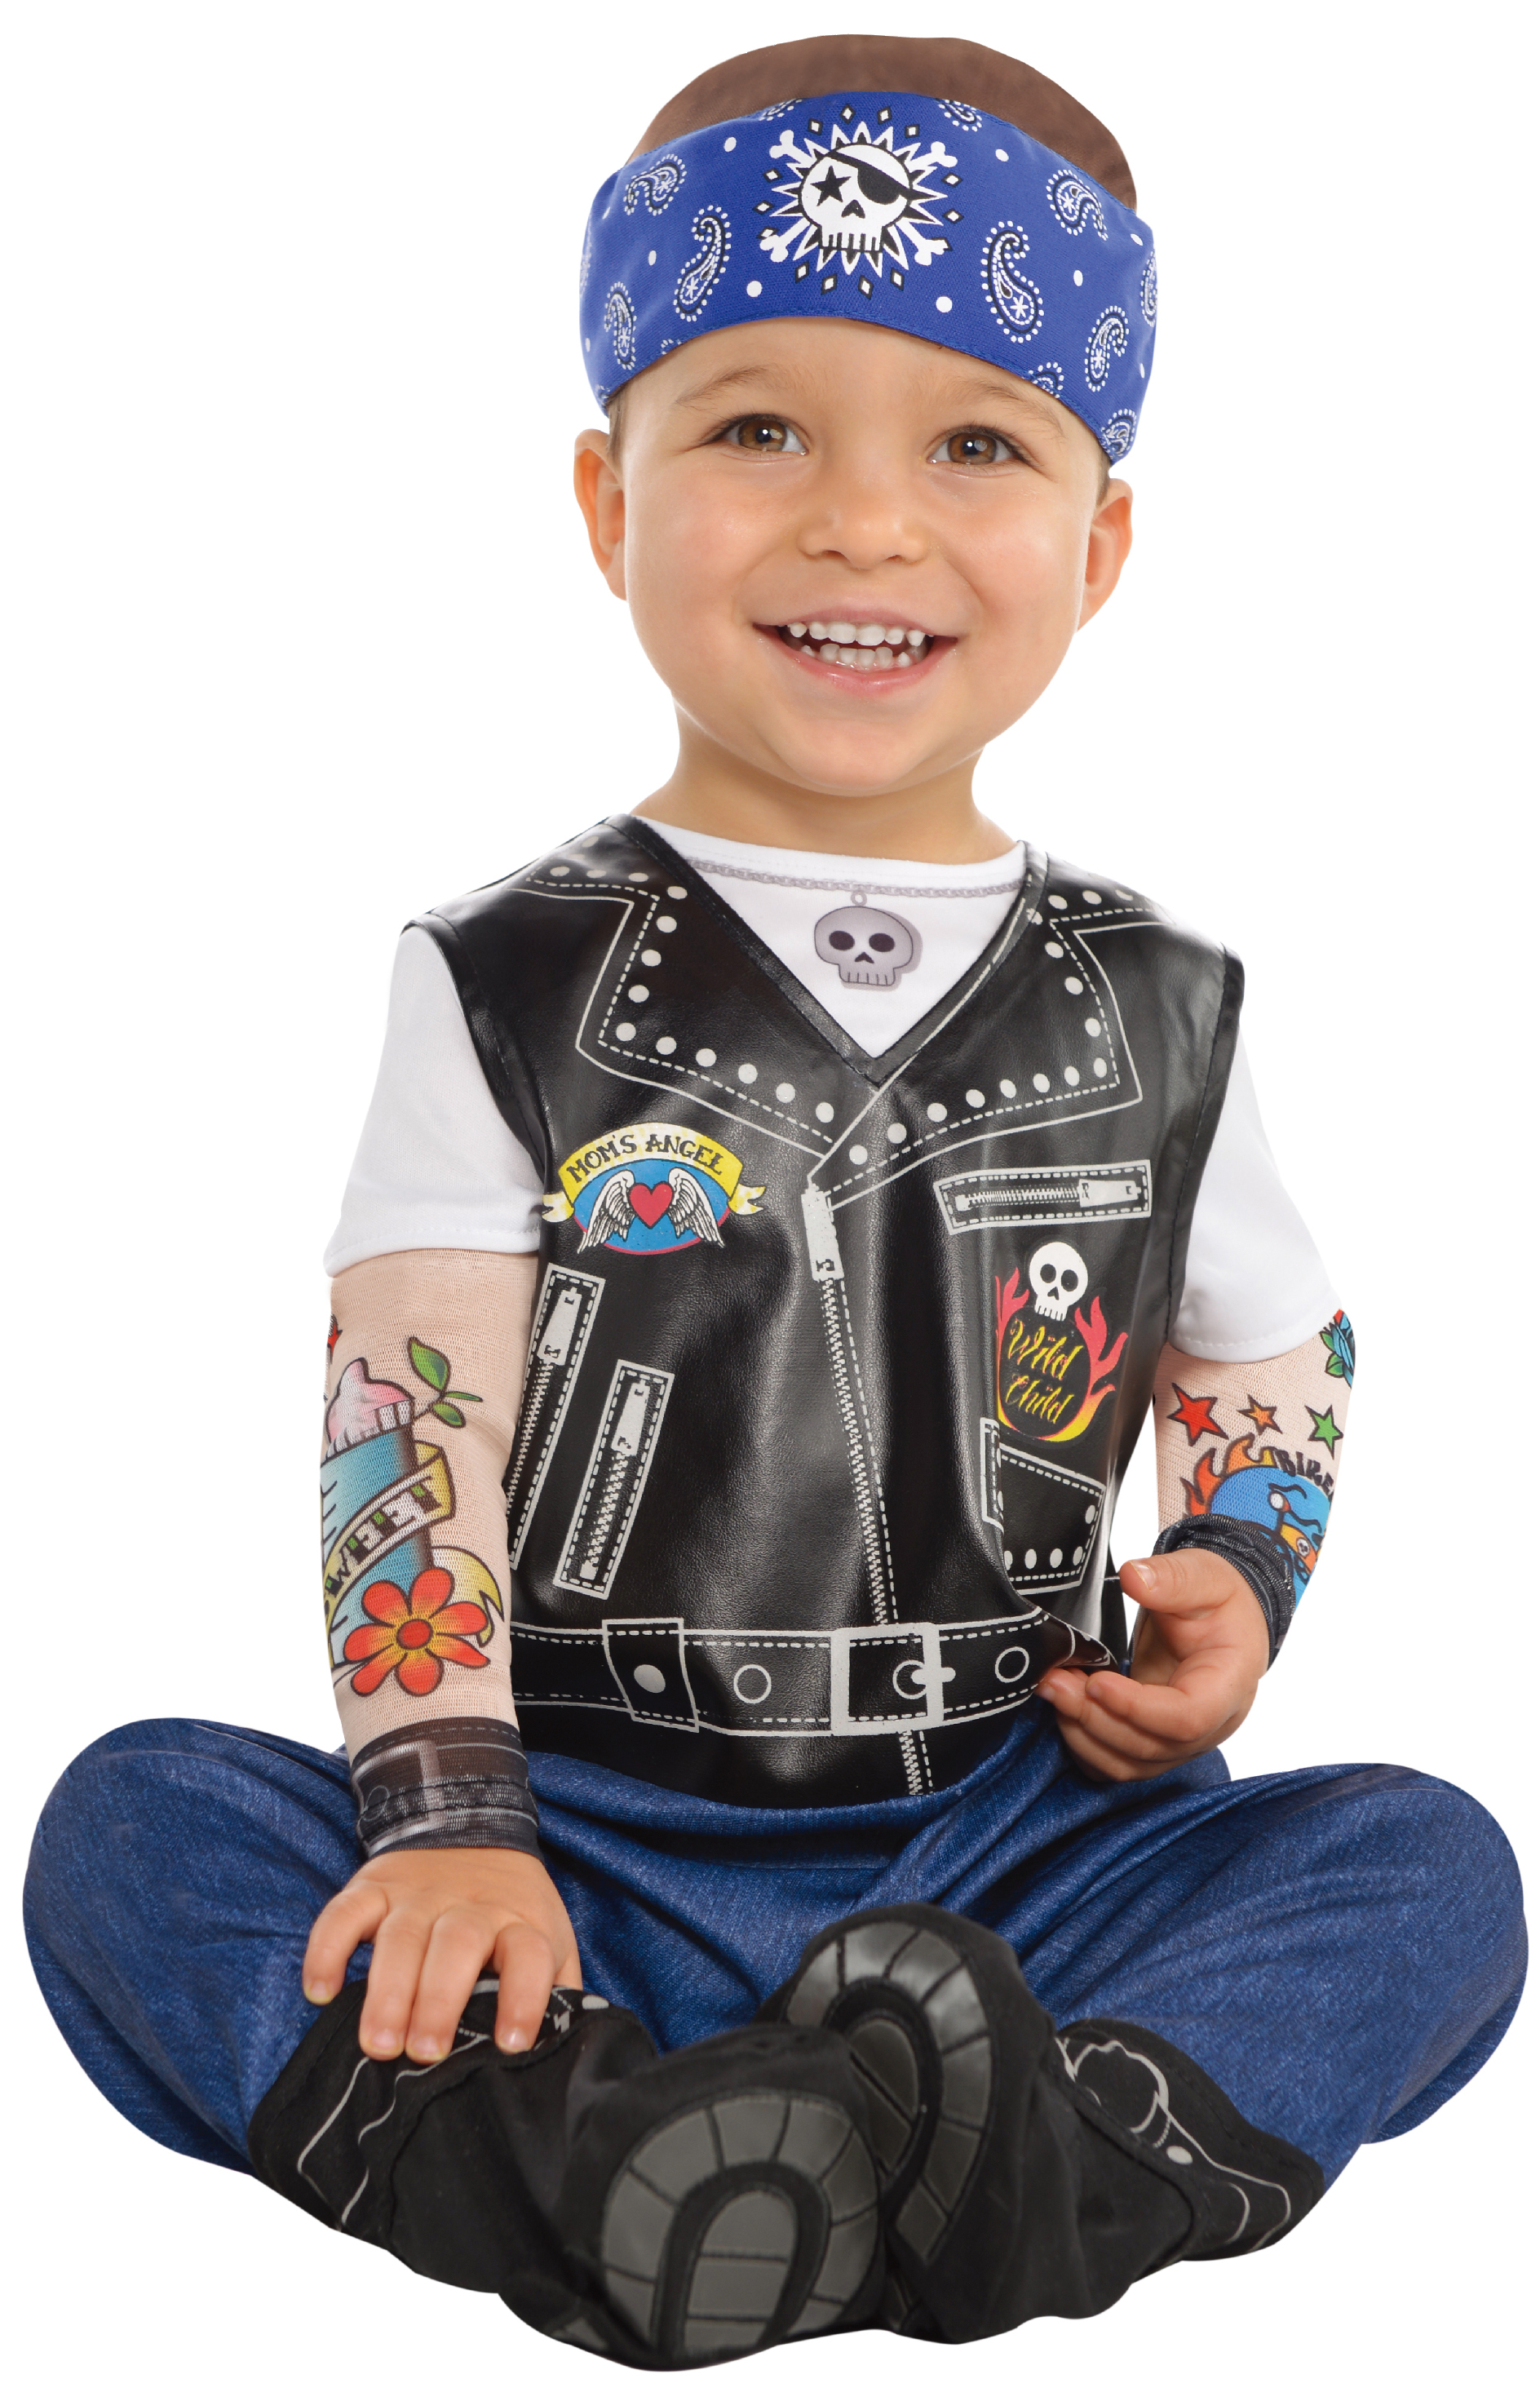 Sentinel Baby Biker Boys Fancy Dress Gangster Gang Punk Toddler Infant Costume Outfit New  sc 1 st  eBay & Baby Biker Boys Fancy Dress Gangster Gang Punk Toddler Infant ...